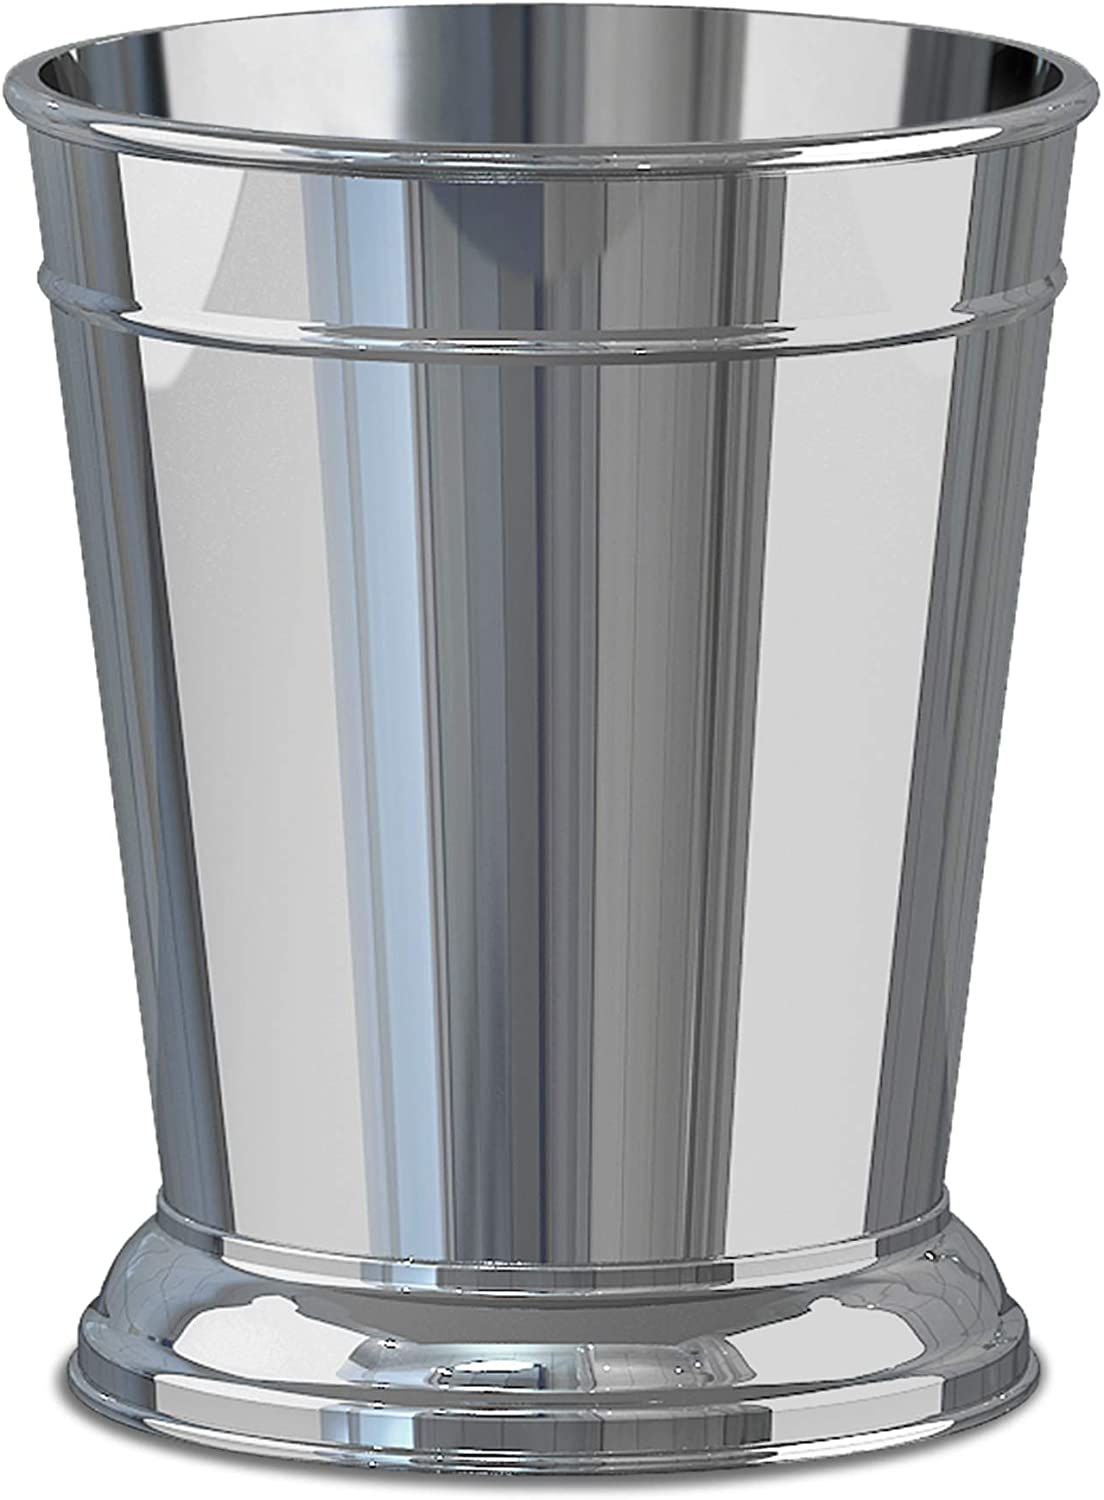 nu steel Timeless Wastebasket, 9-Quart